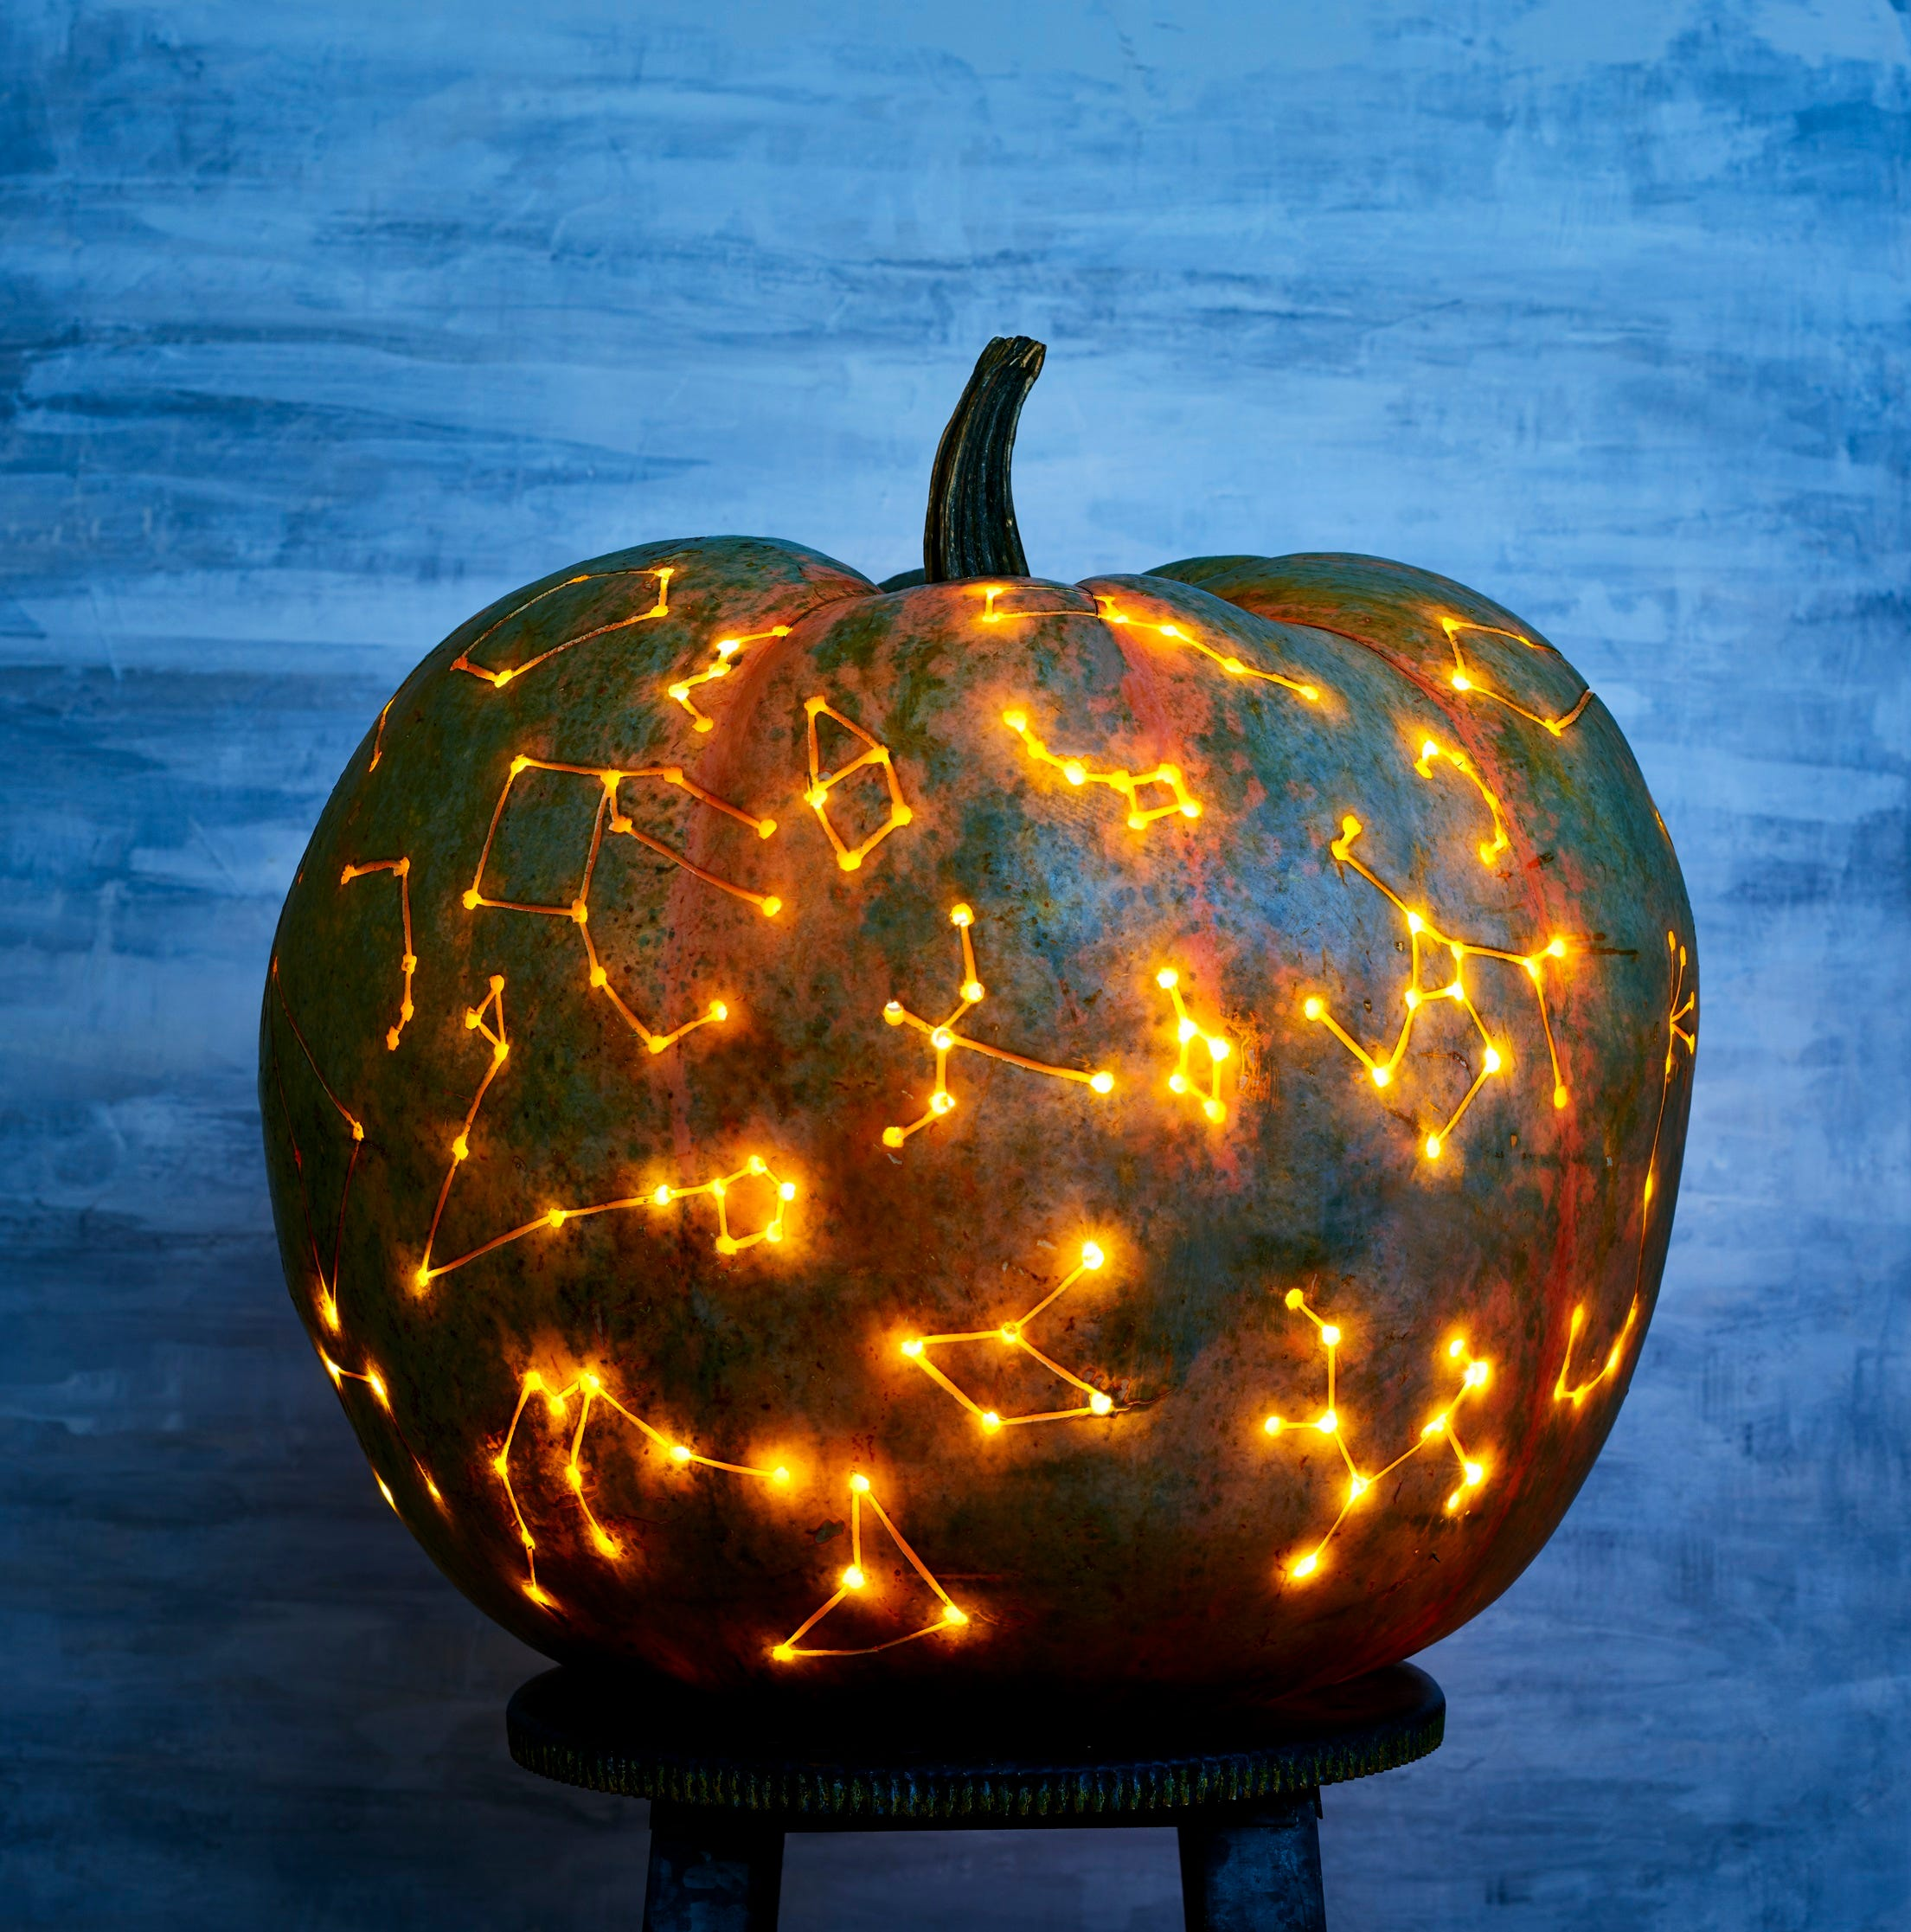 Pumpkin Carving Ideas Scary Cool Designs Halloween 2017